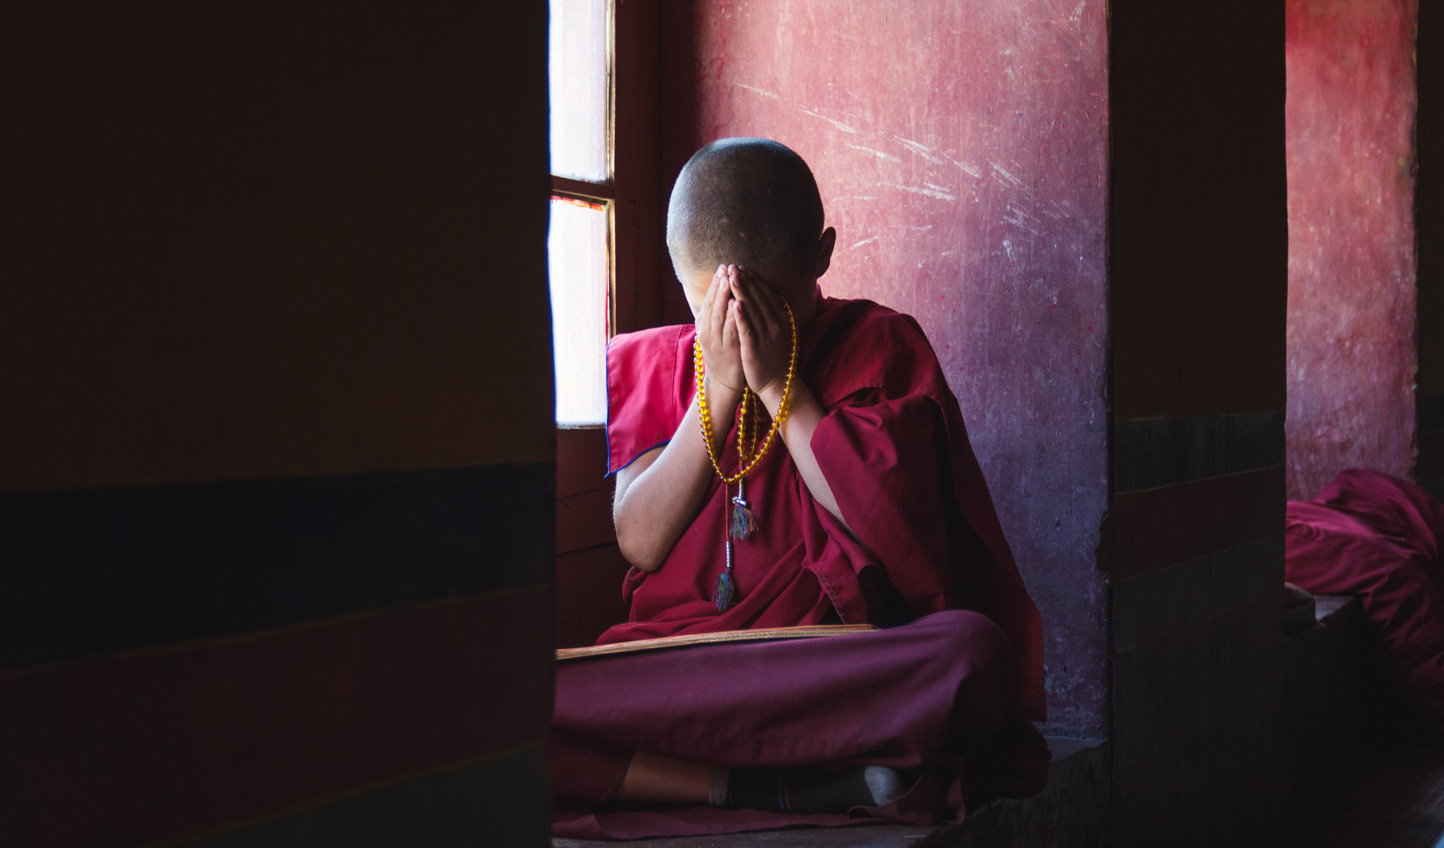 Join morning prayers at the monastery